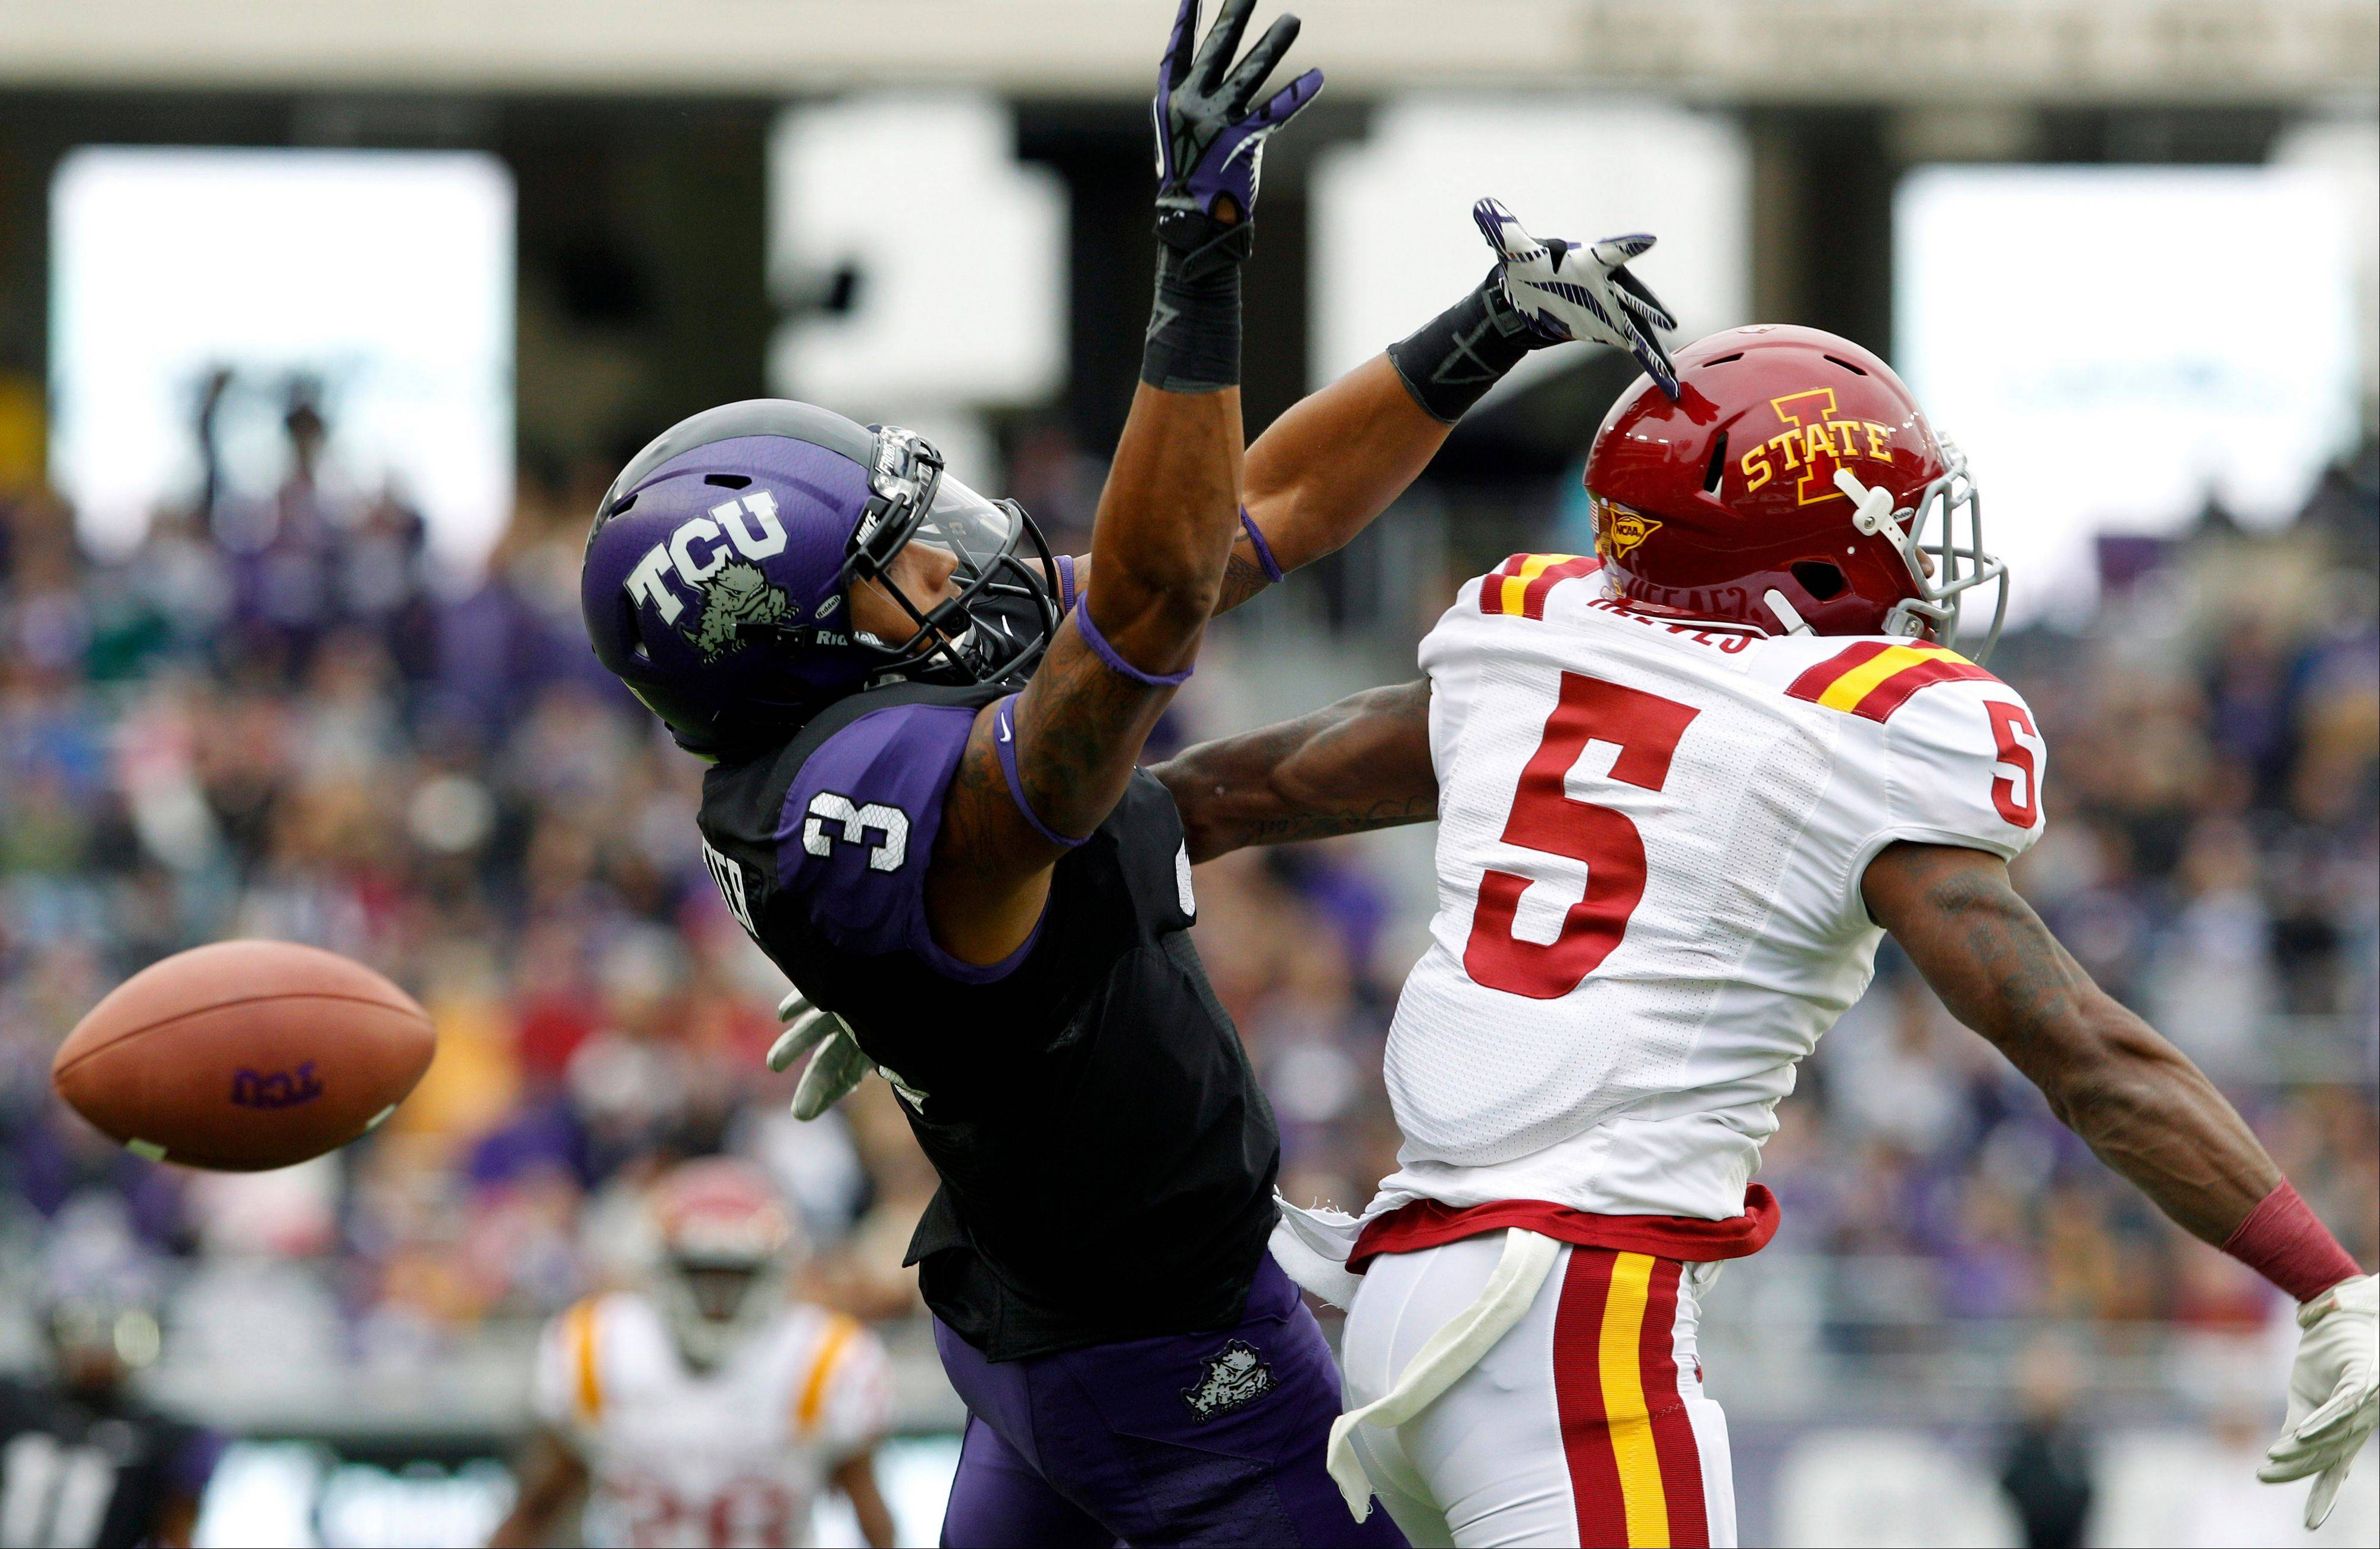 TCU wide receiver Brandon Carter and Iowa State defensive back Jeremy Reeves jump for a pass that fell incomplete during the first half Saturday in Fort Worth, Texas.